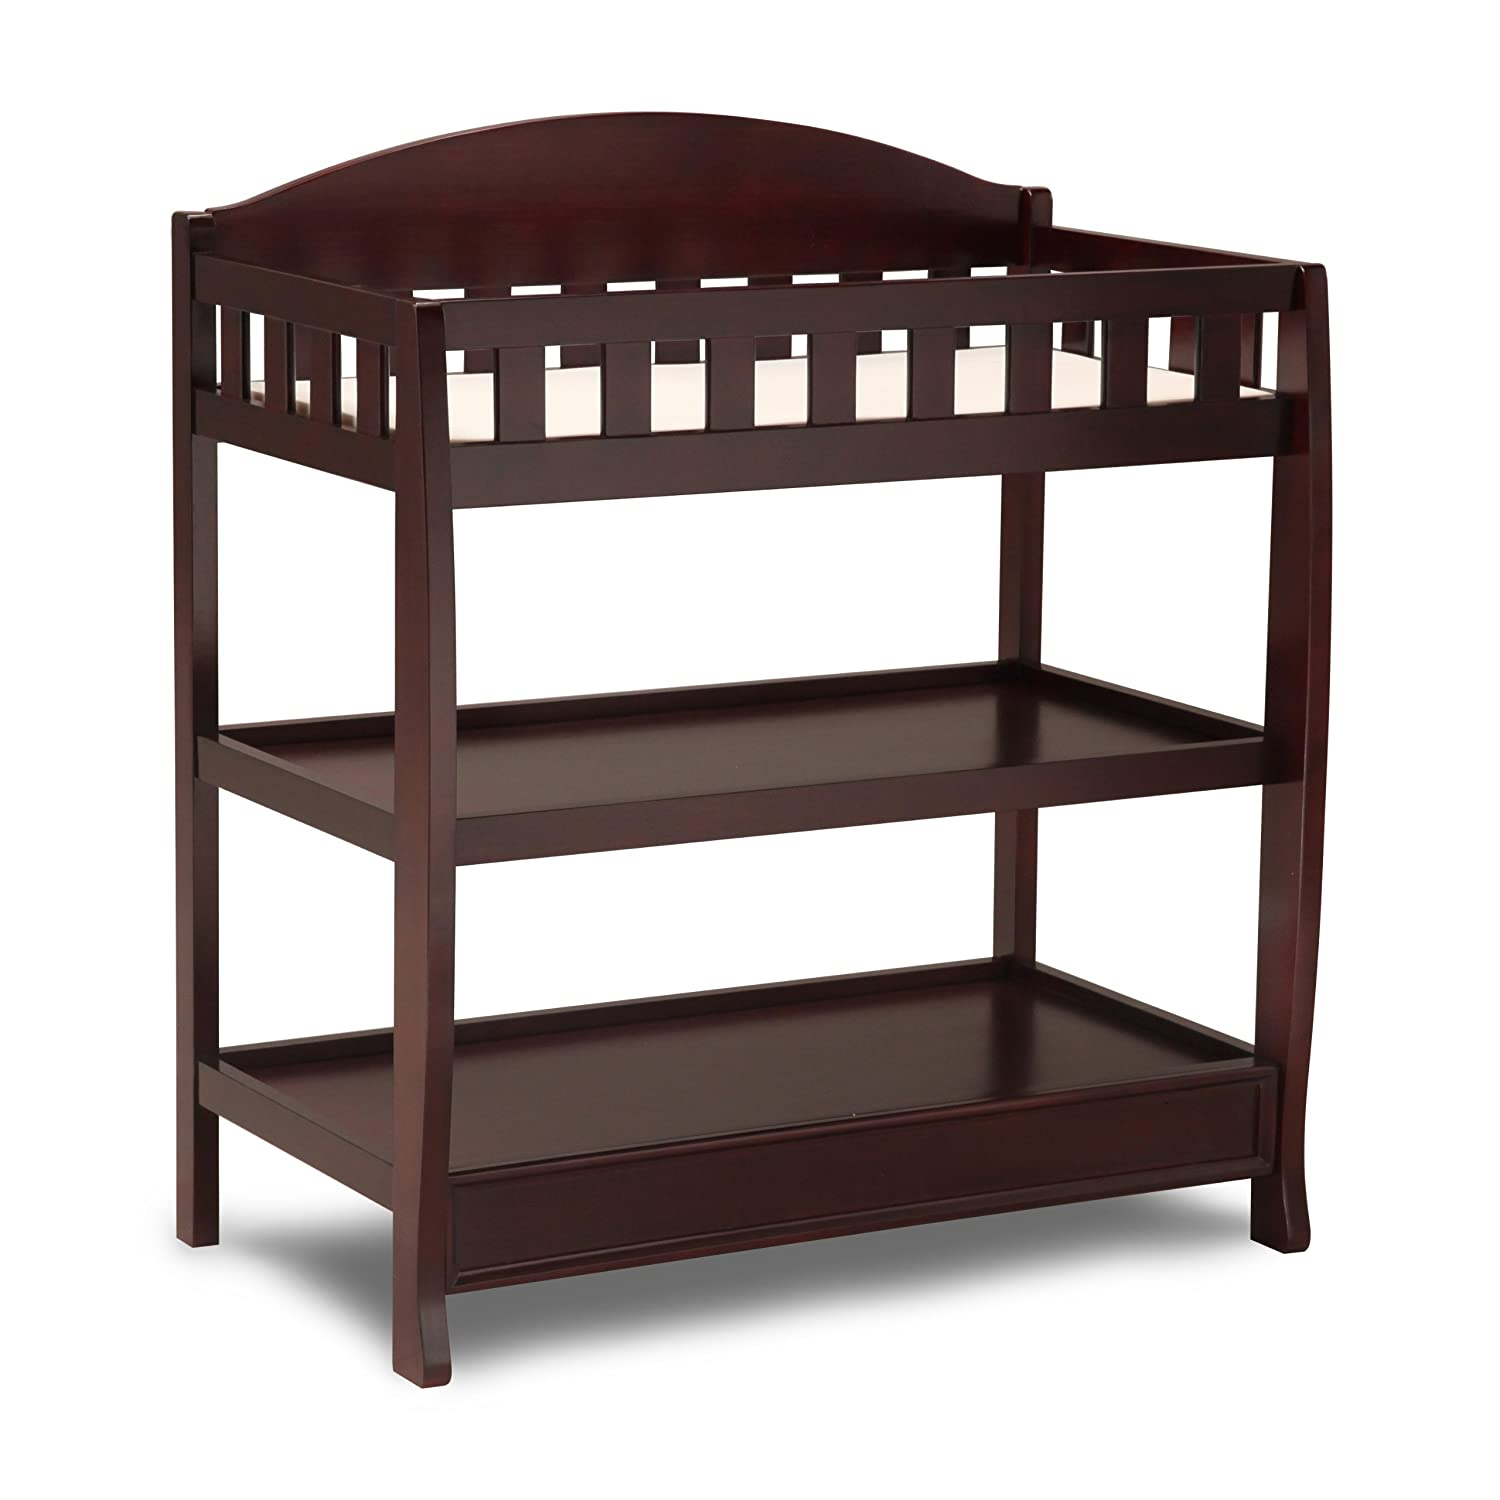 Incroyable Amazon.com : Delta Children Infant Changing Table With Pad, Dark Chocolate  : Baby